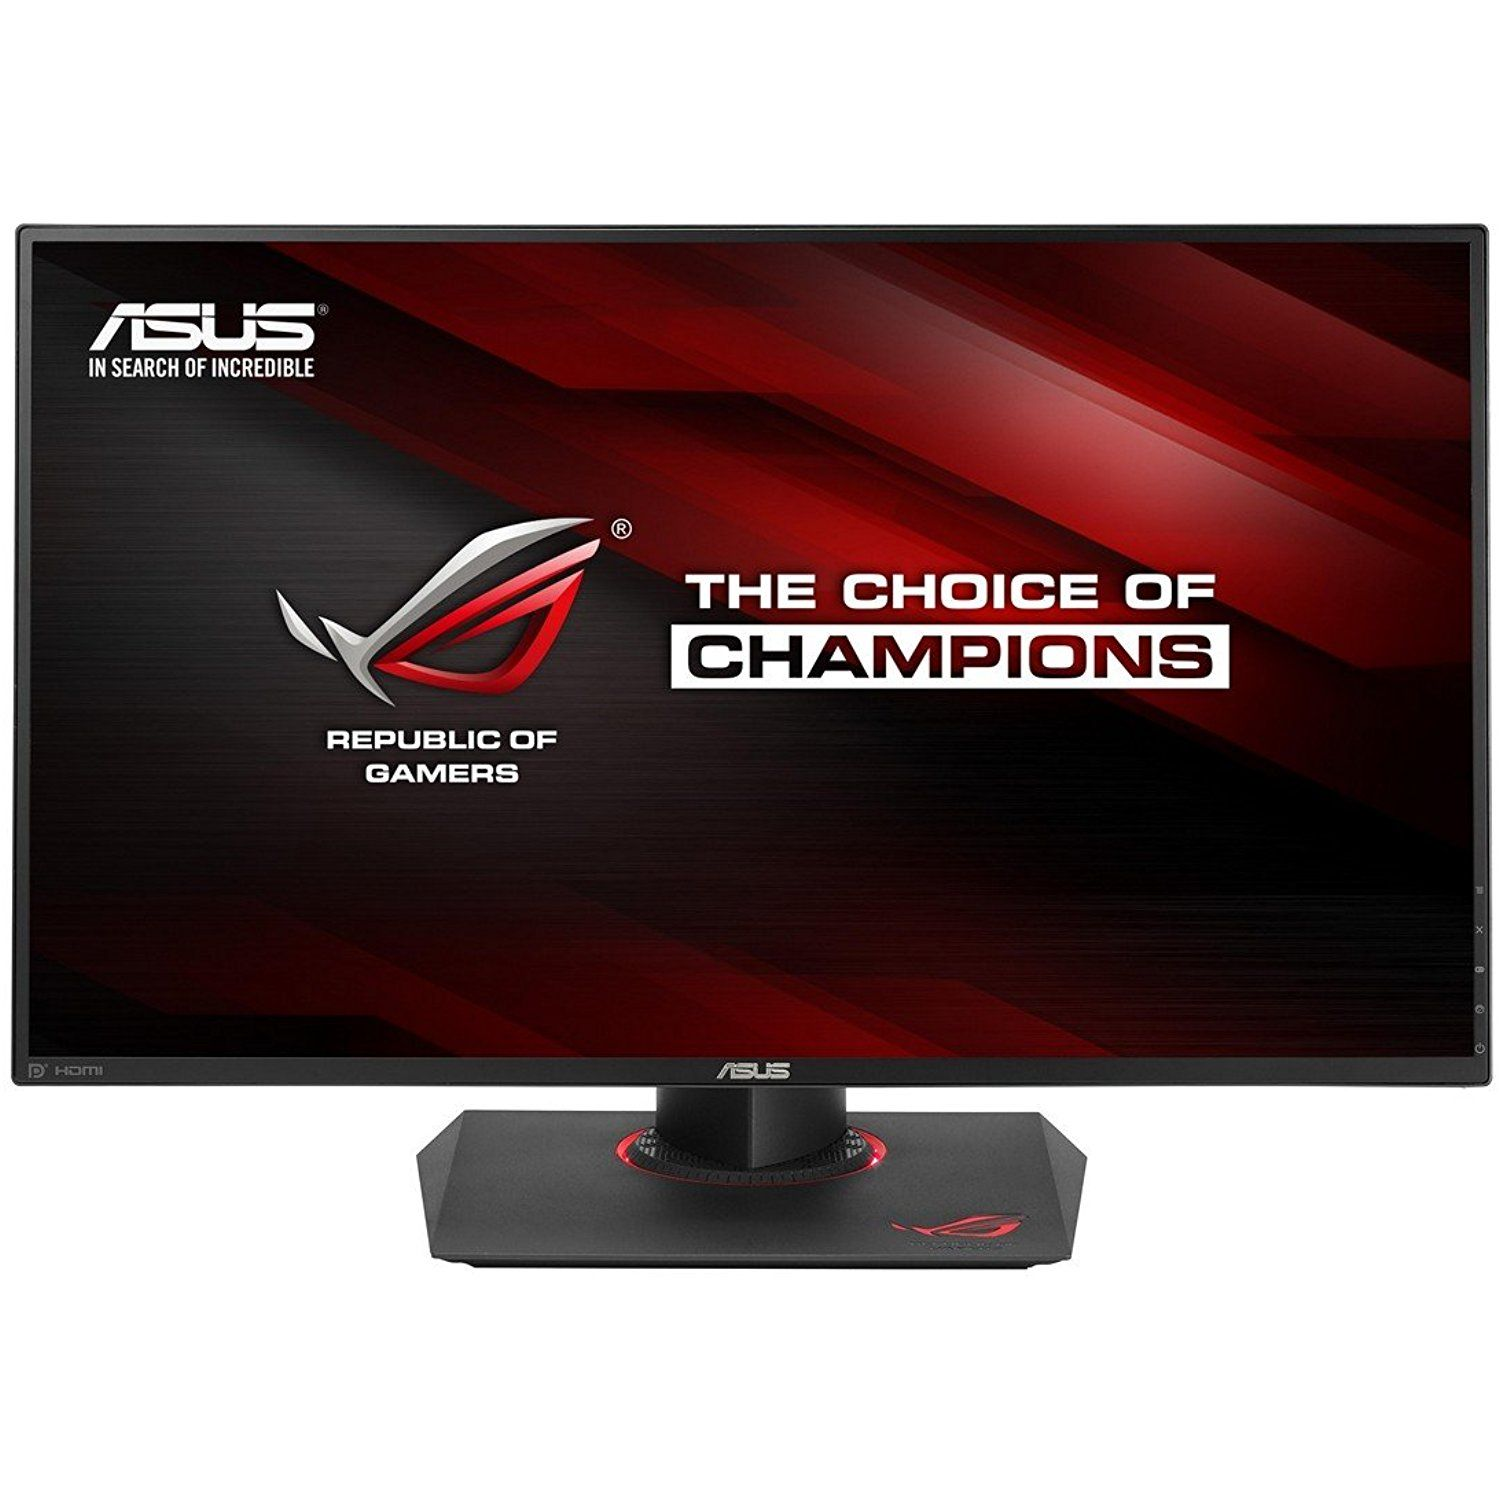 Asus Rog Swift Pg279q 27 2560x1440 Ips 165hz 4ms G Sync Eye Care Gaming Monitor With Dp And Hdmi Ports Be Sure To Check Asus Monitor Buy Computer